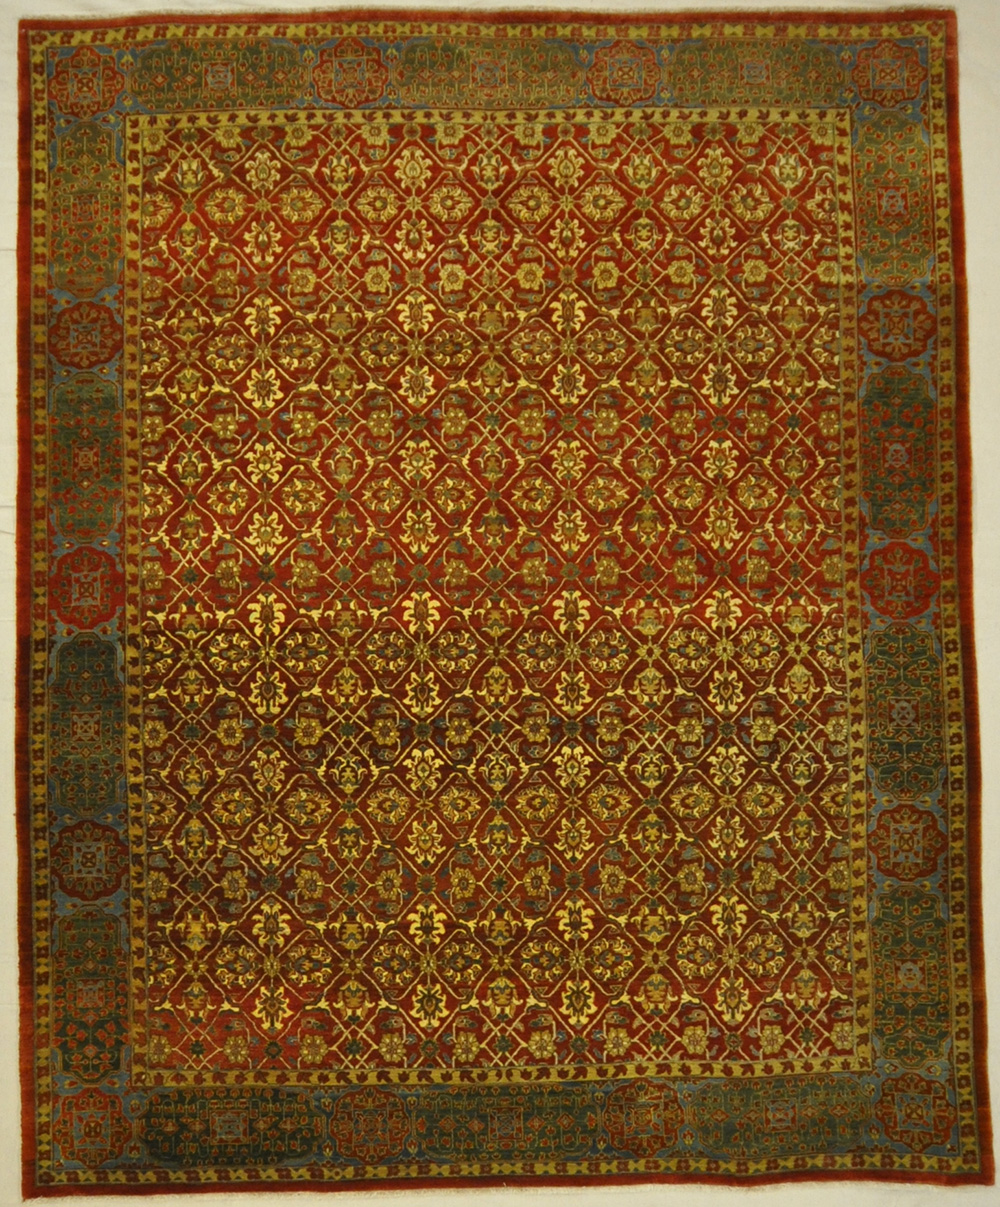 Ziegler & Co Mamluk rugs and more oriental carpet 32542-1